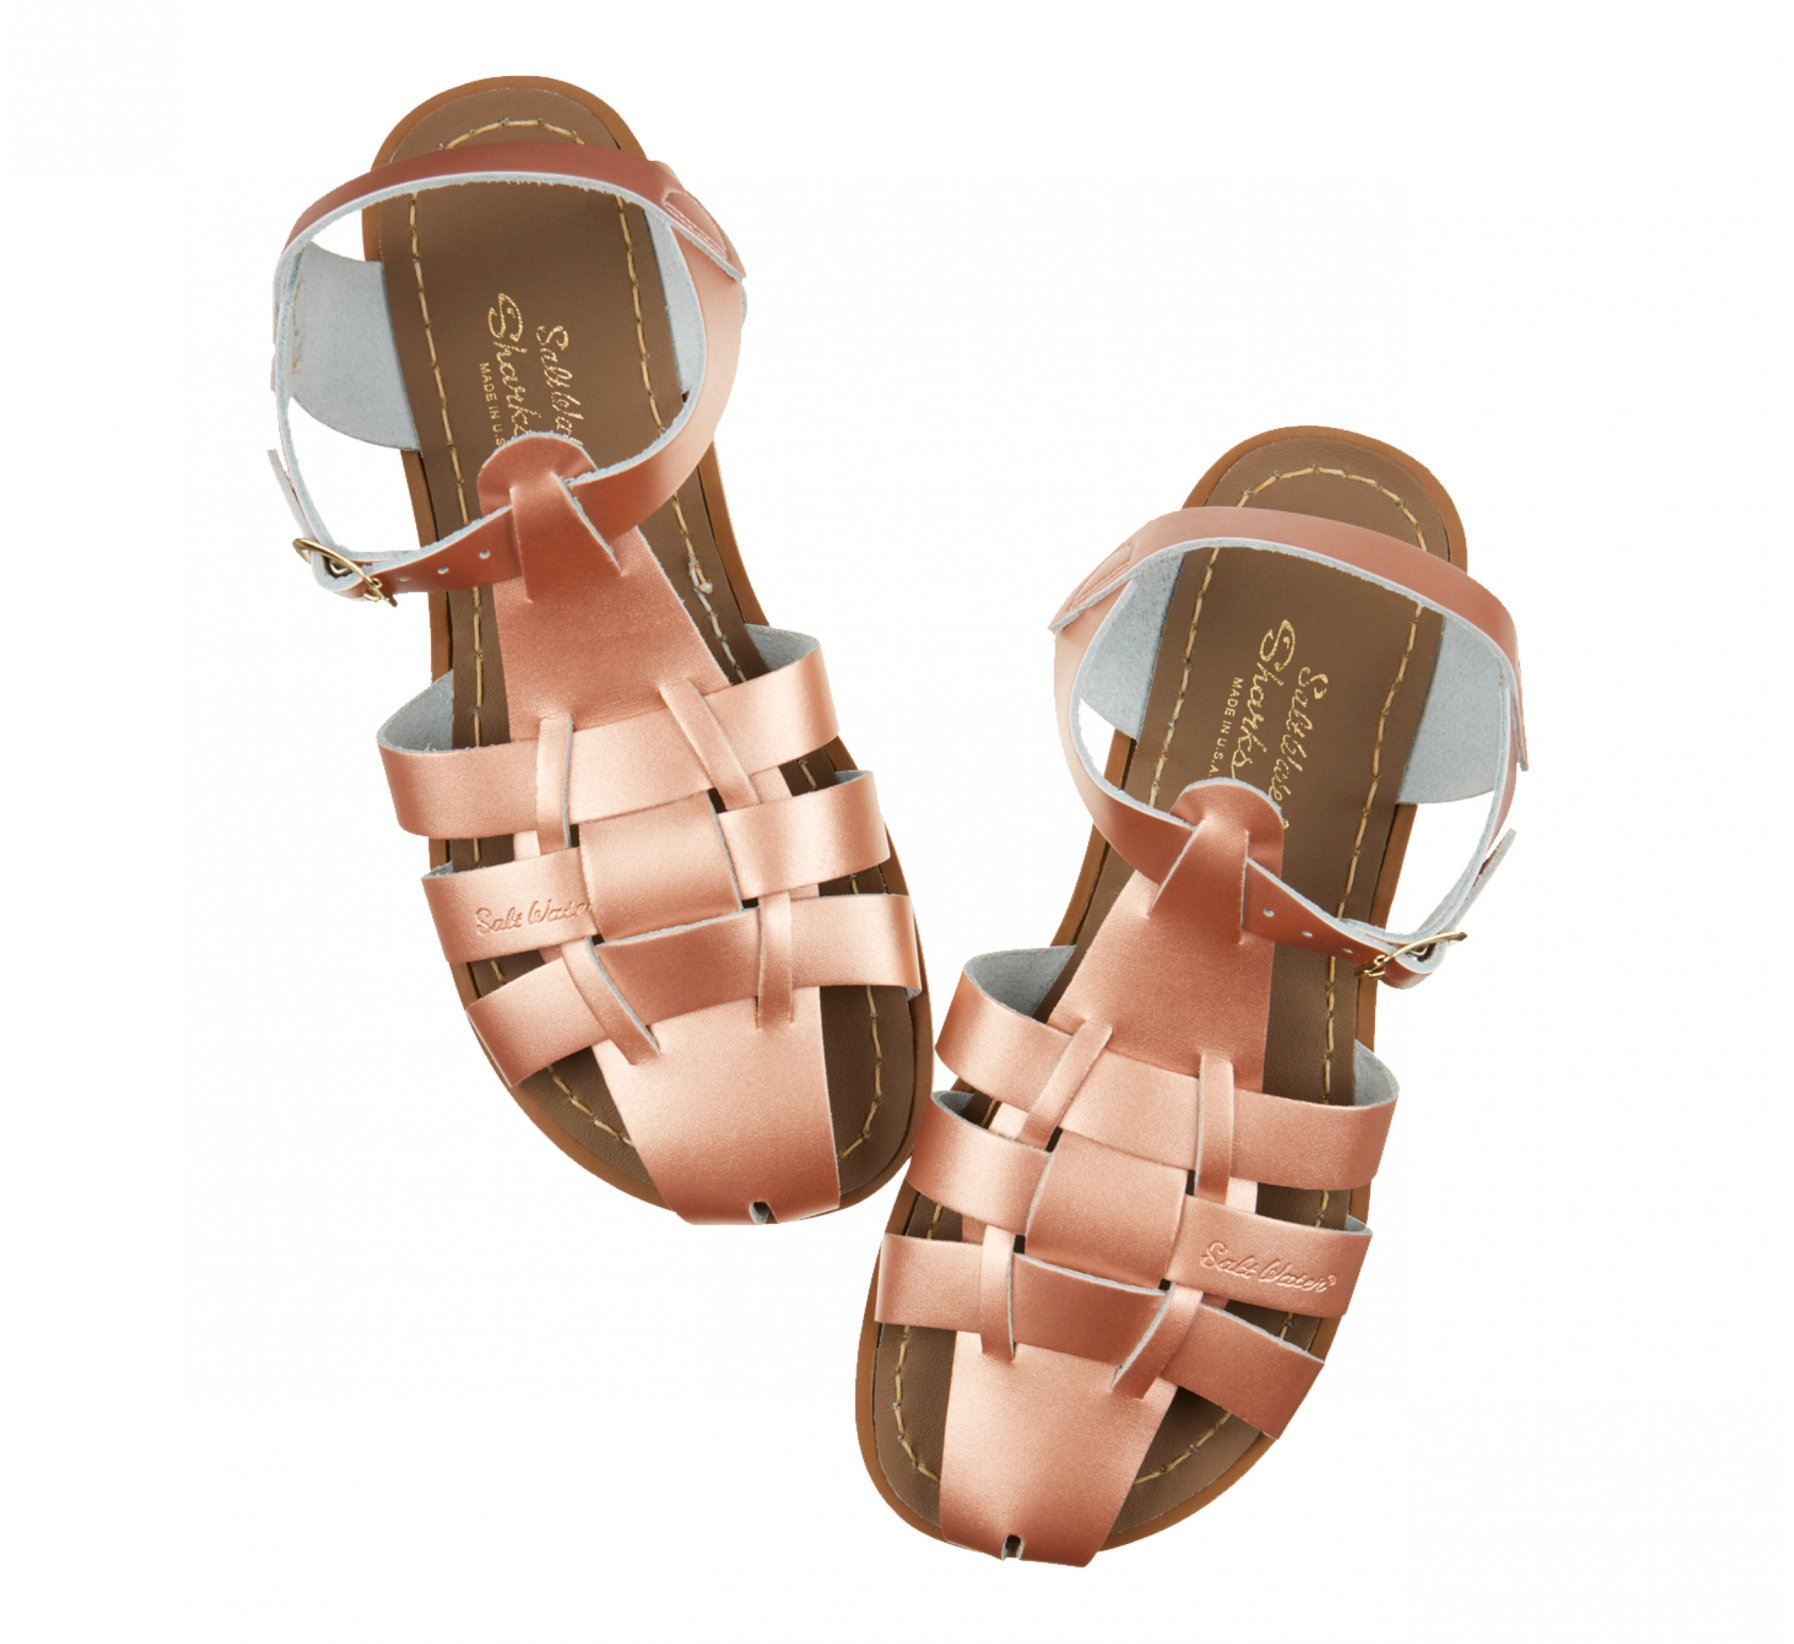 Shark Original Rose Gold - Salt Water Sandals